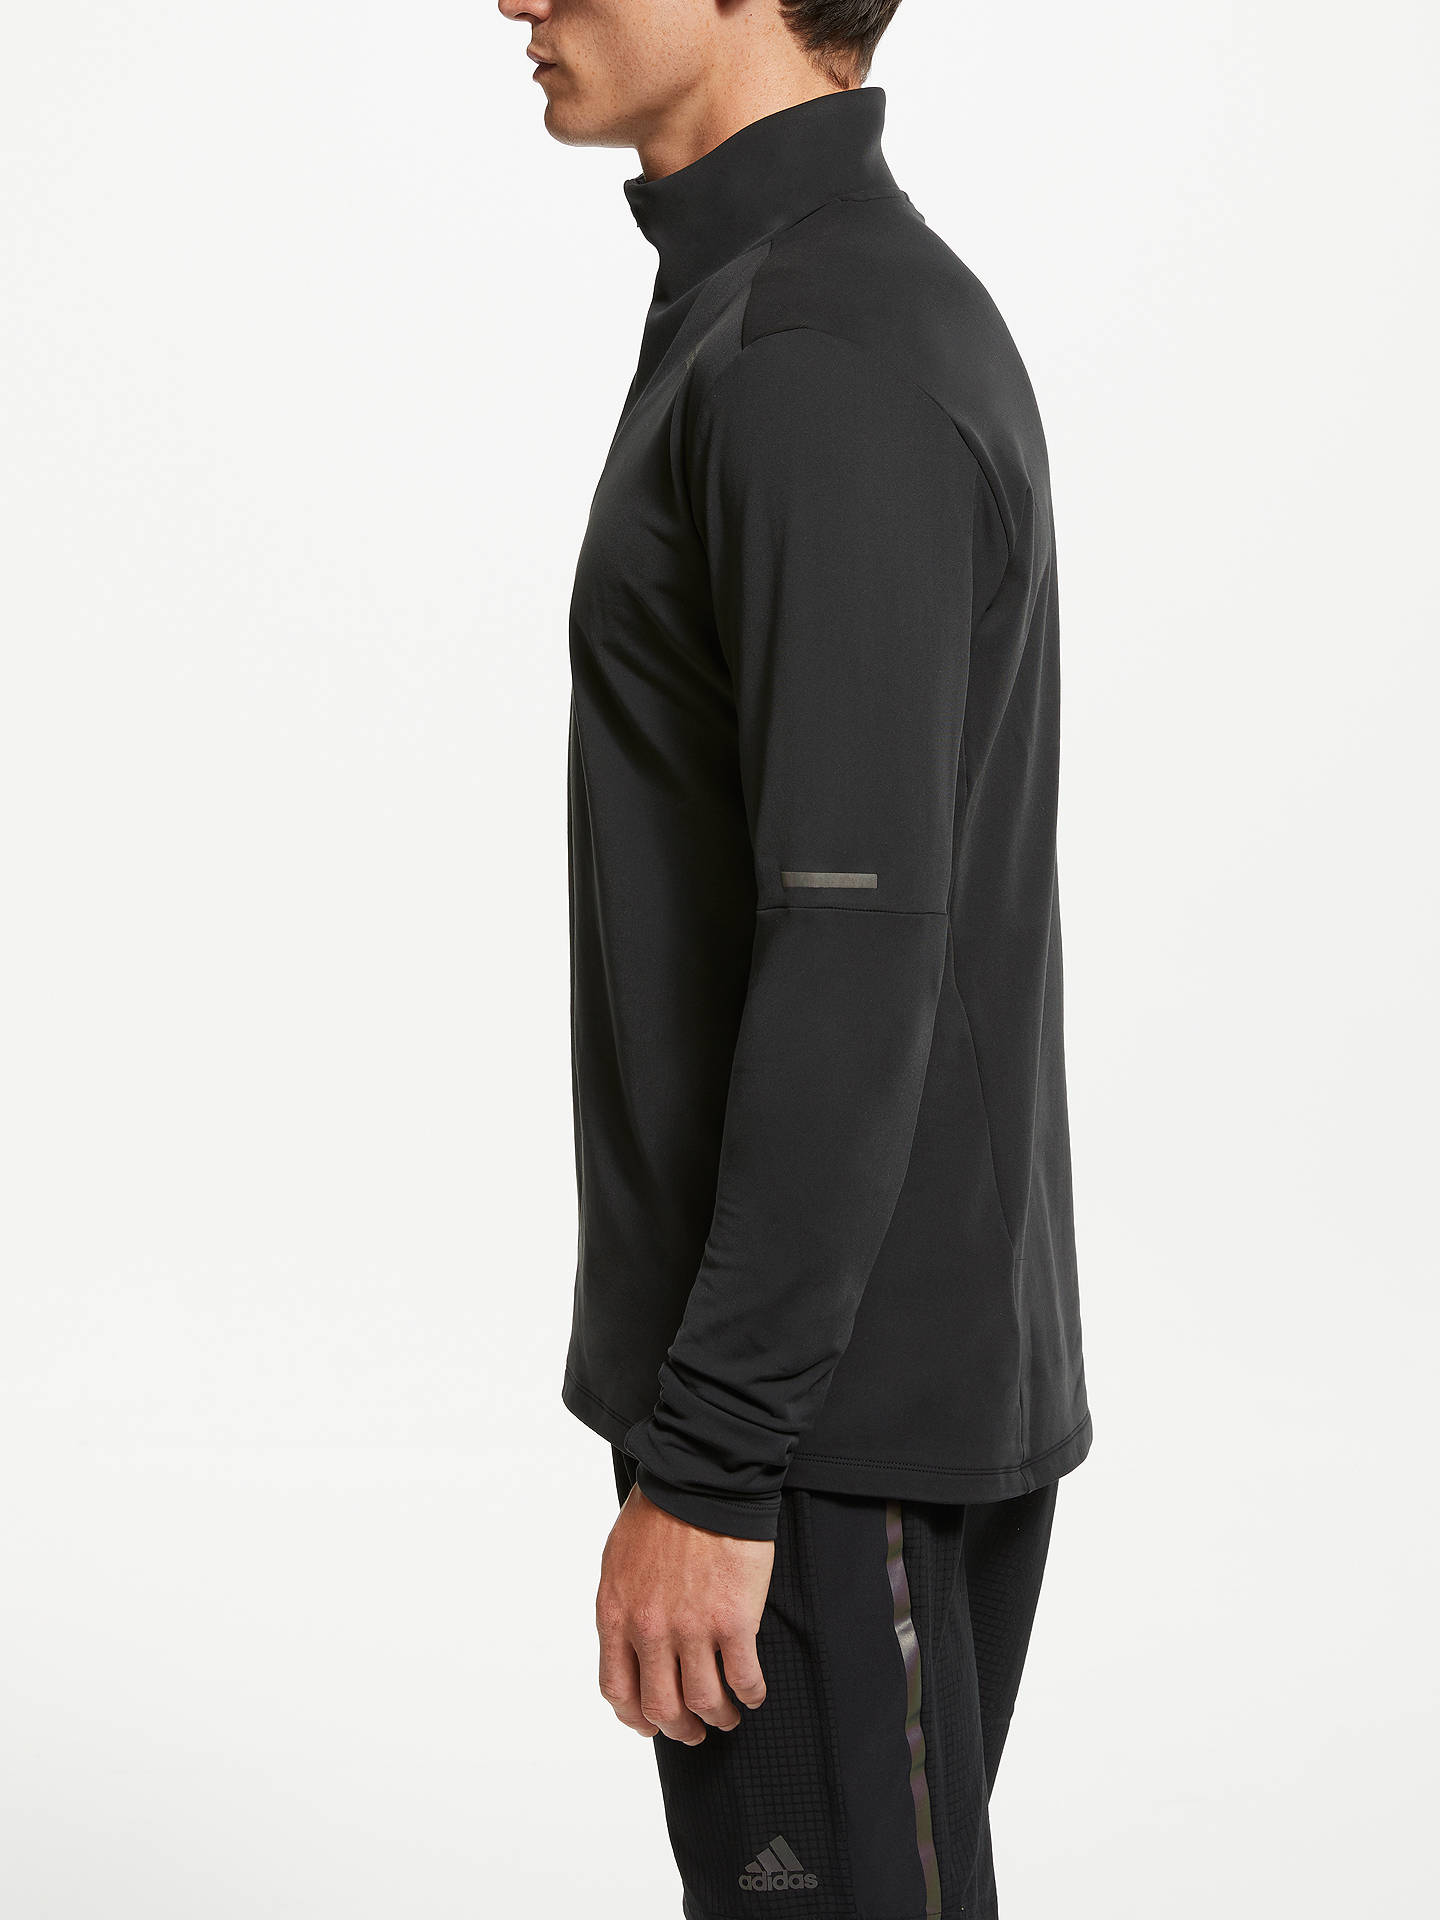 419b57ec adidas Supernova 1/4 Zip Long Sleeve Running Top at John Lewis ...